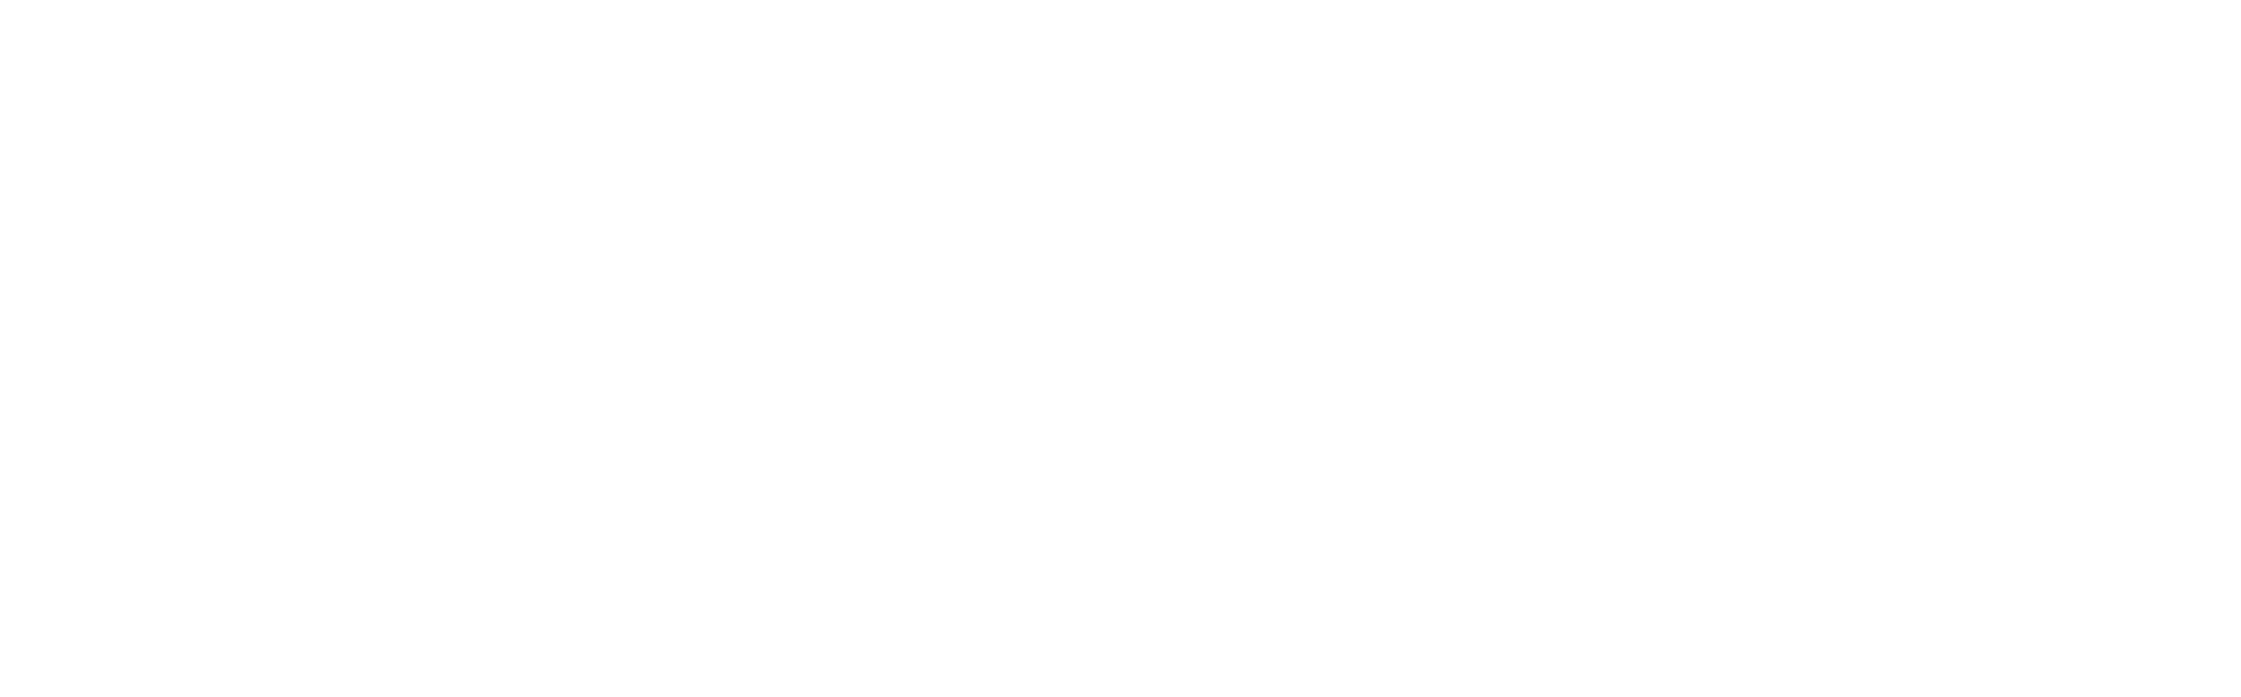 #MeToo Or Fifty Shades Quiz